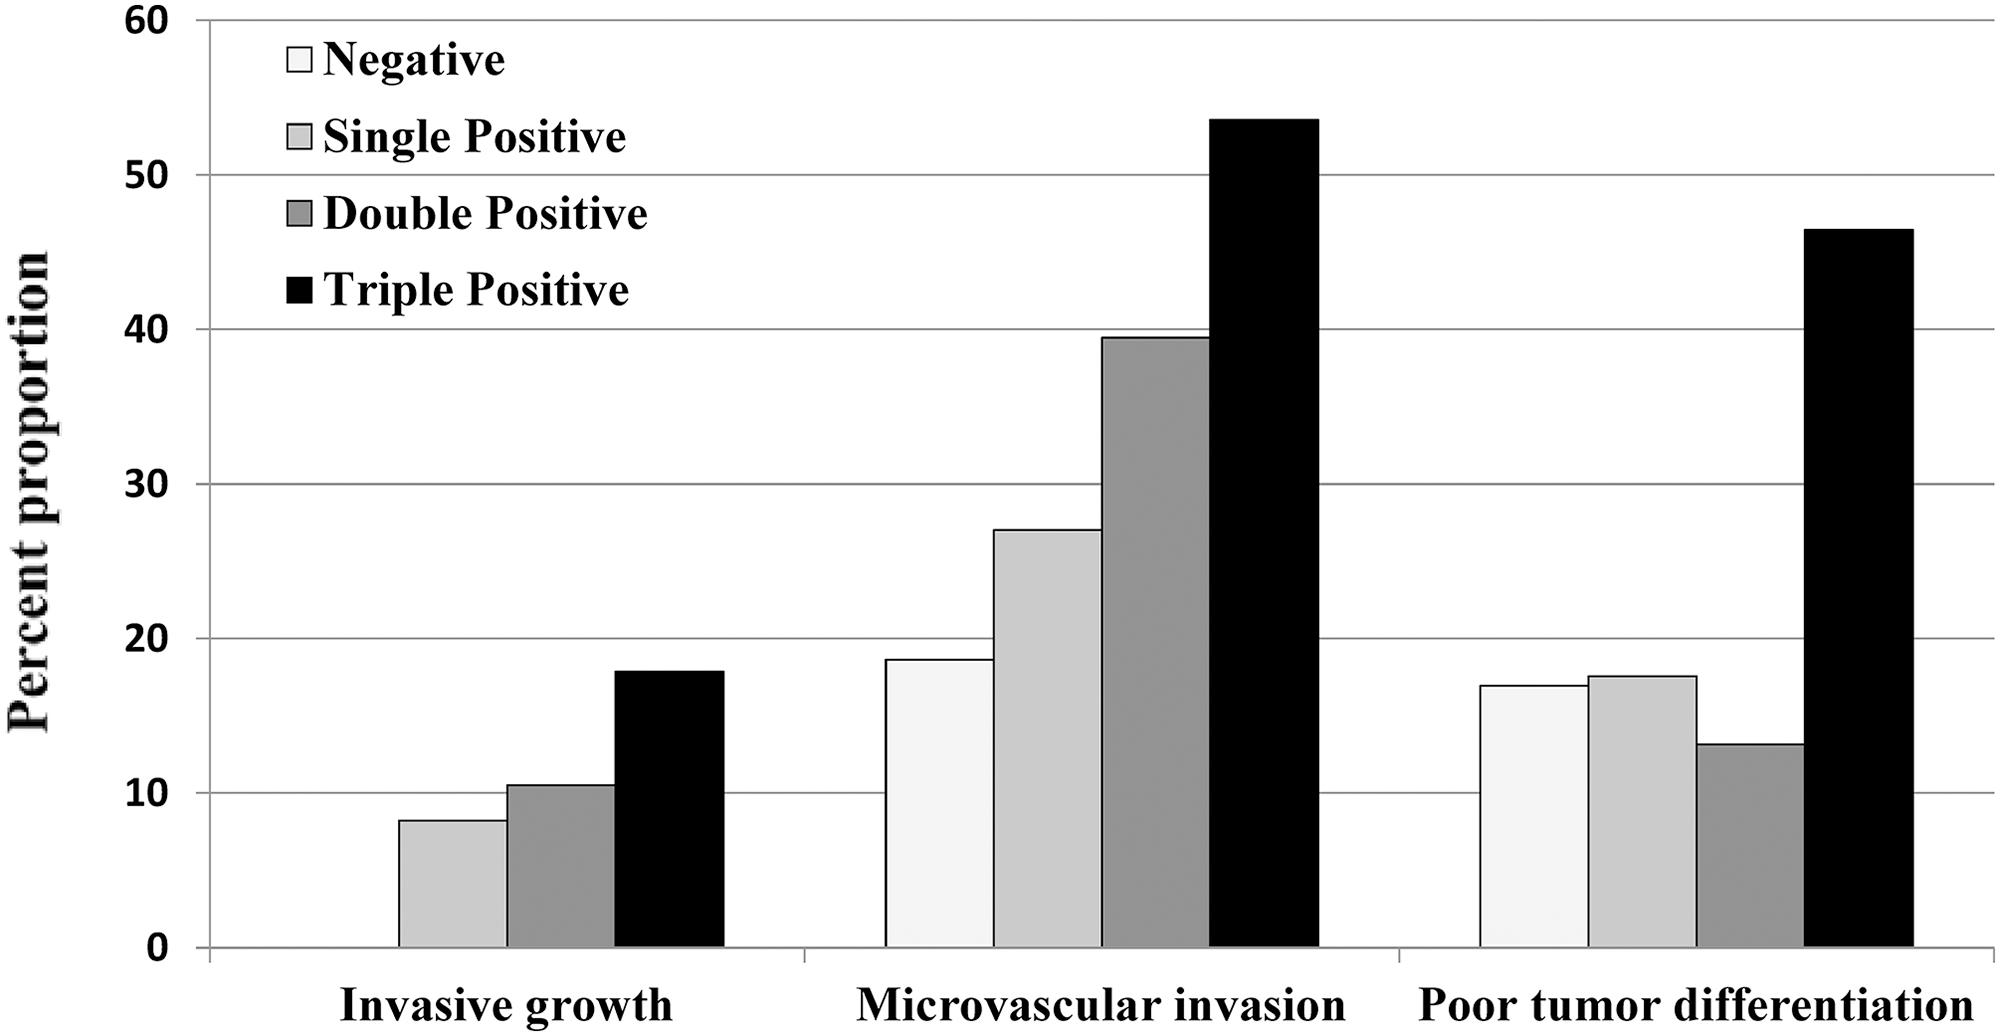 Association between histological factors and number of positive tumor markers.